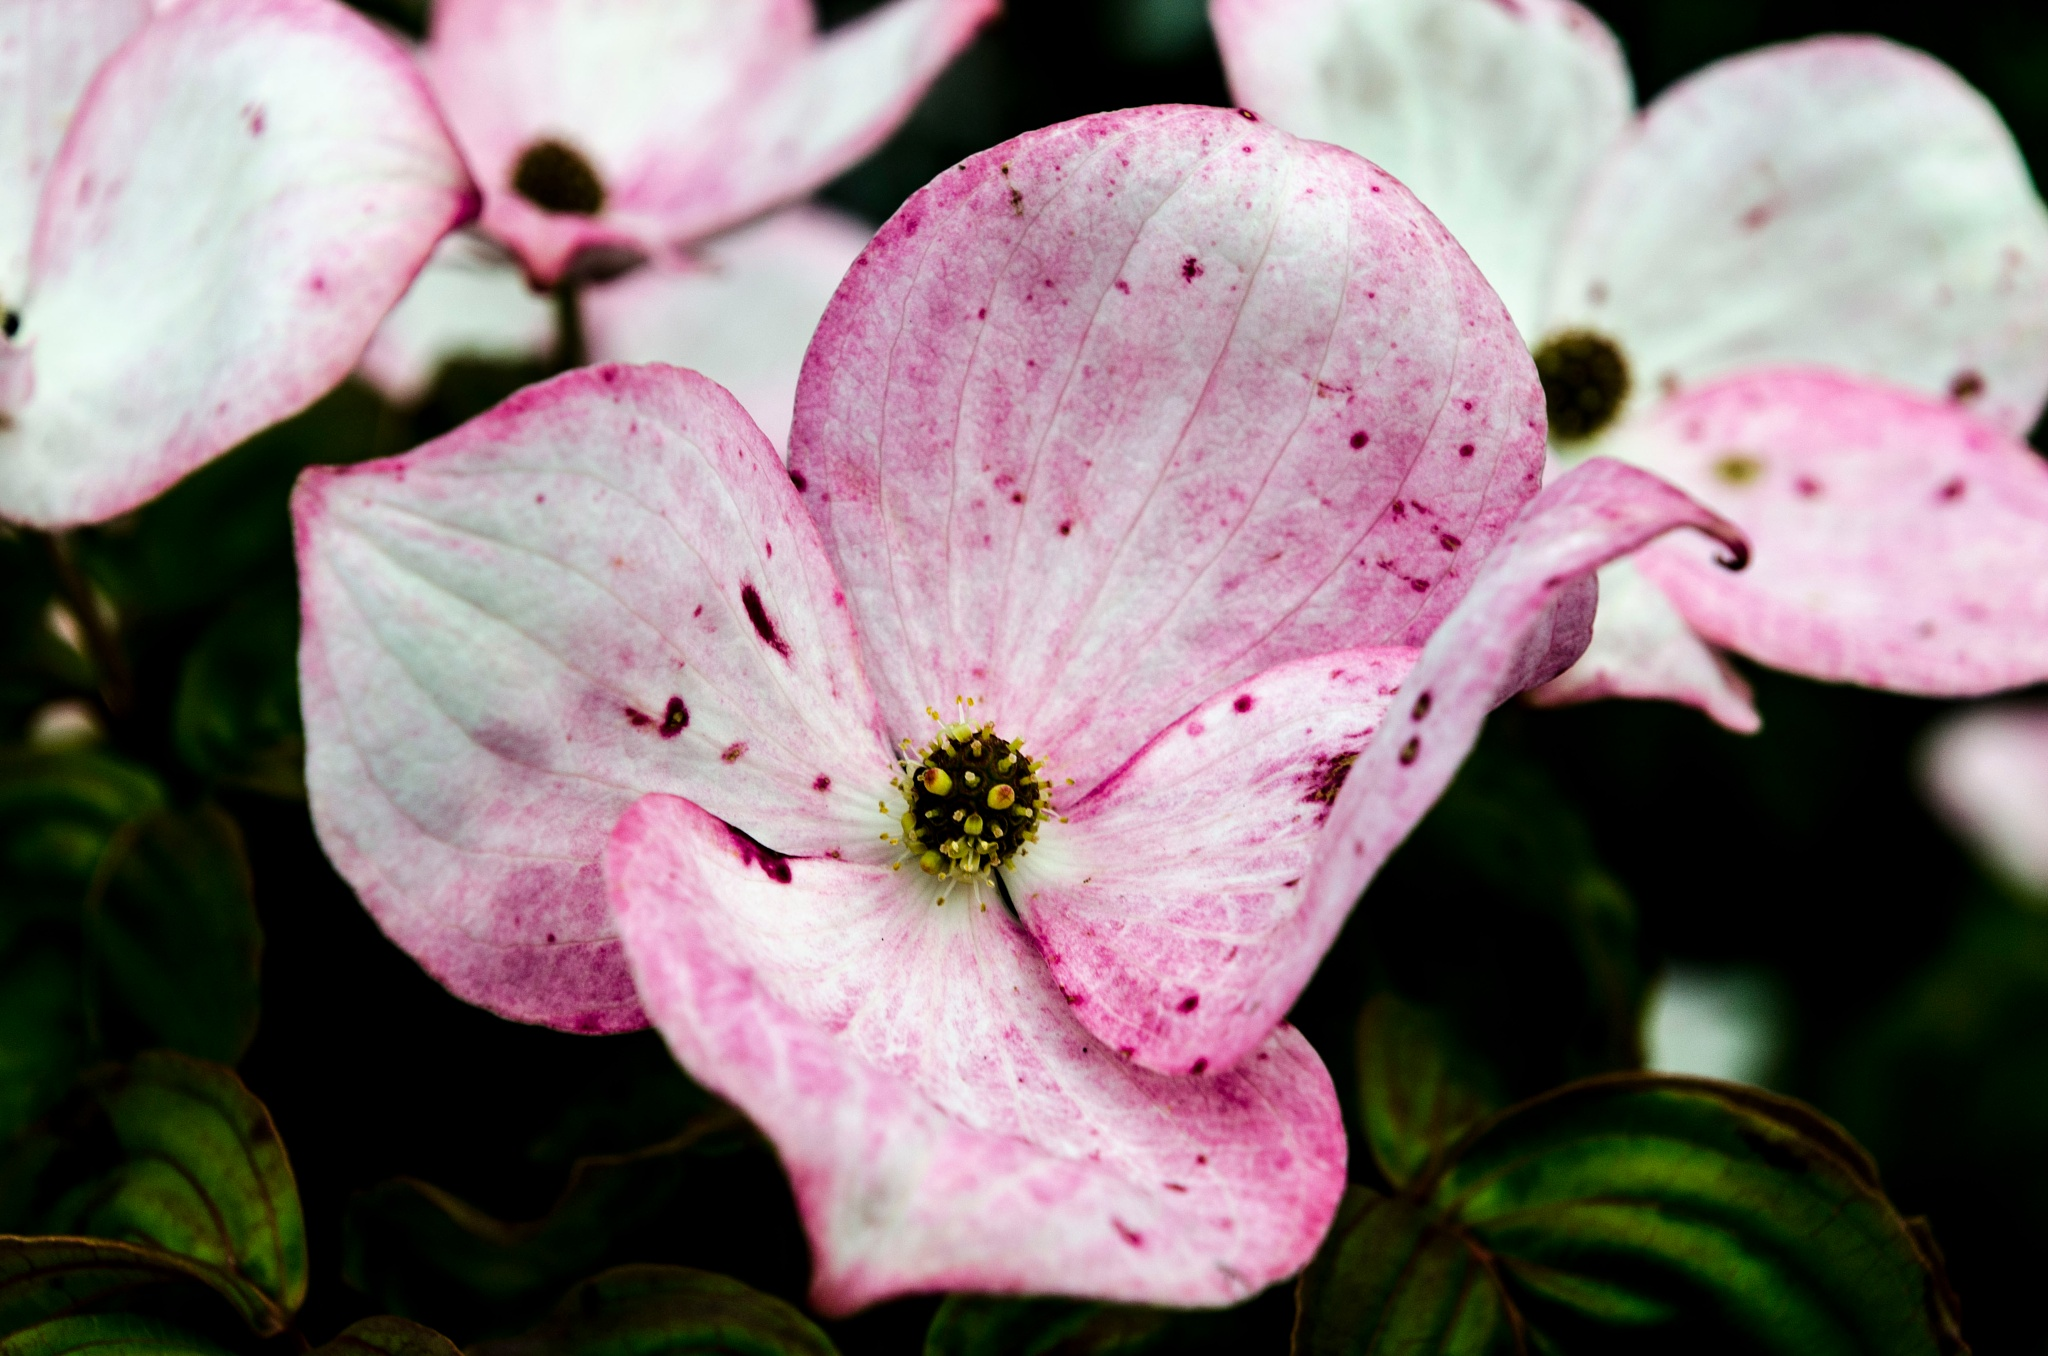 Flower on a bush by Johnny Lythell